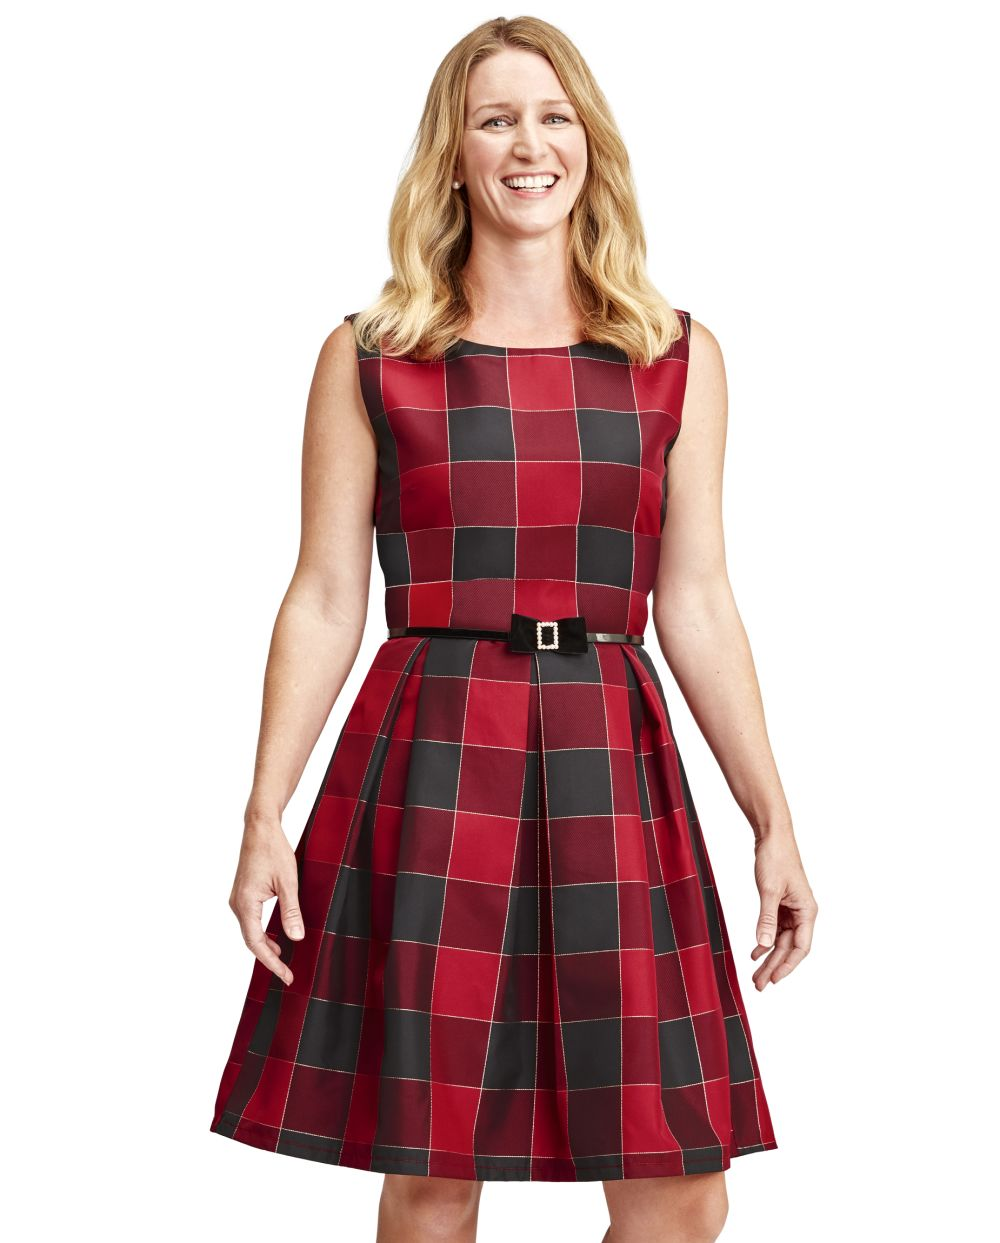 s Womens Mommy And Me Buffalo Plaid Matching Fit And Flare Dress - Red - The Children's Place